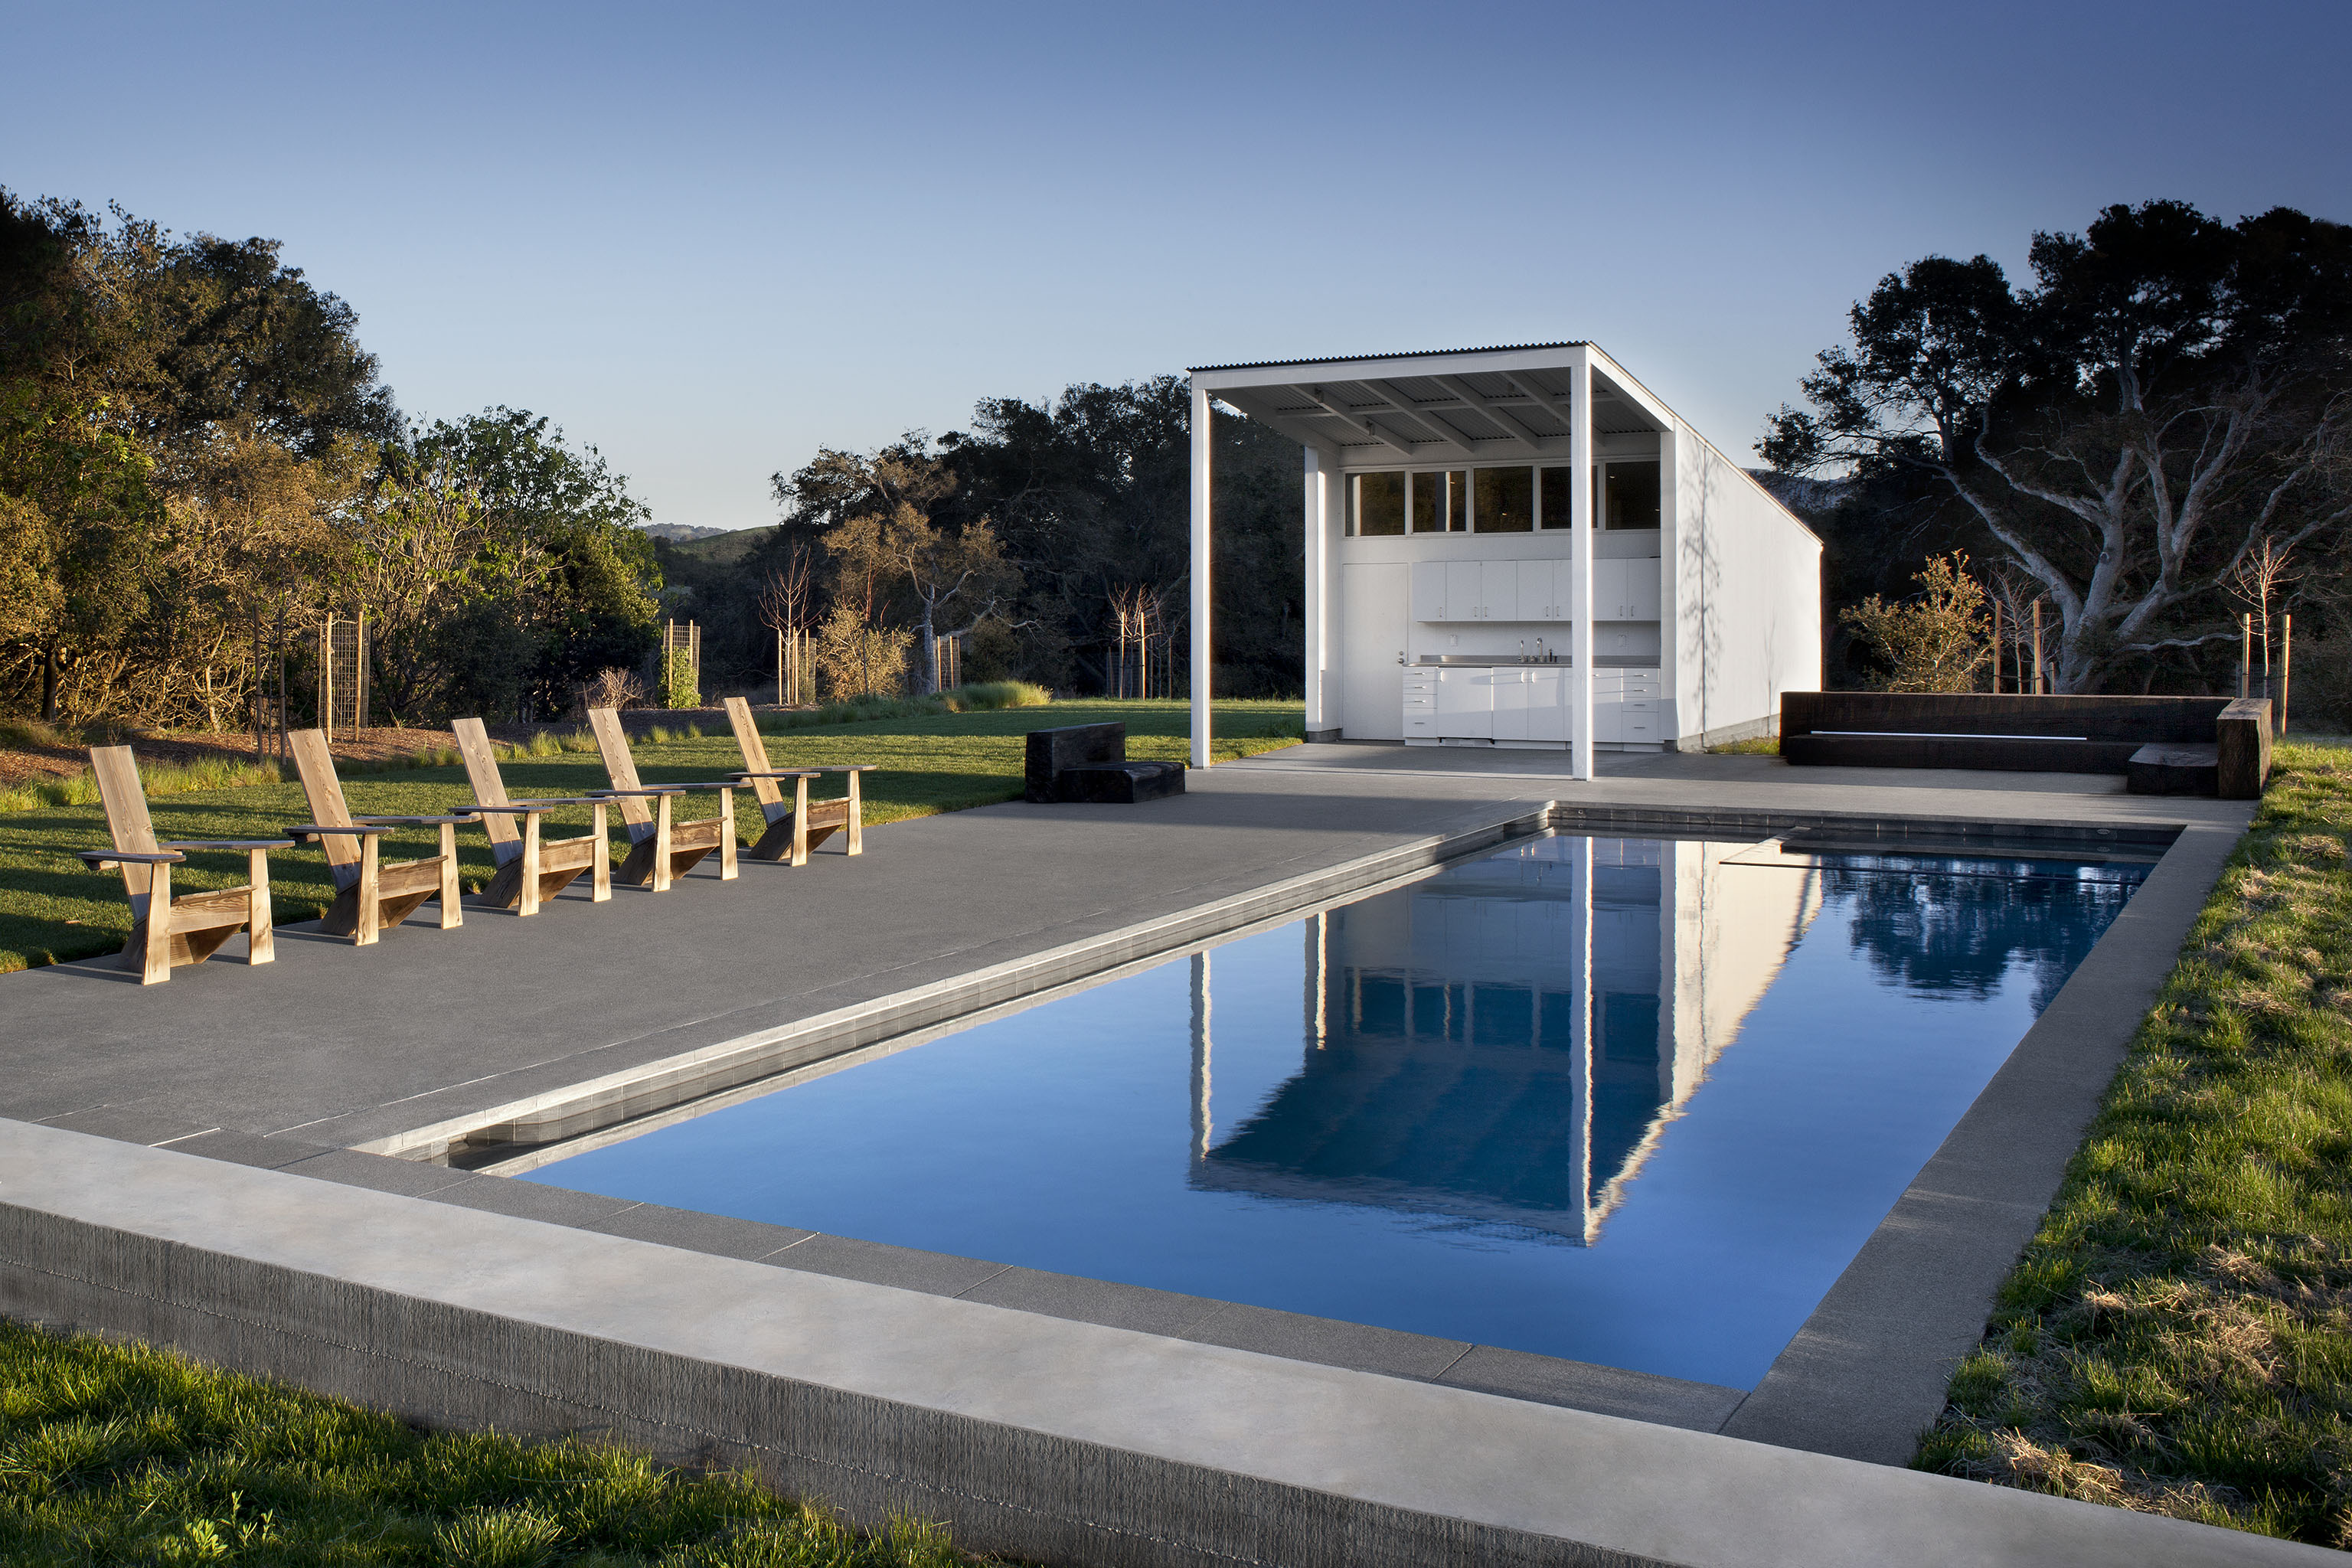 The extensive patio and pool area plays host to a large pool house, built in the same minimalist style as the barn home. An outdoor kitchen area complements the large patio, standing sheltered beneath an extended rooftop.